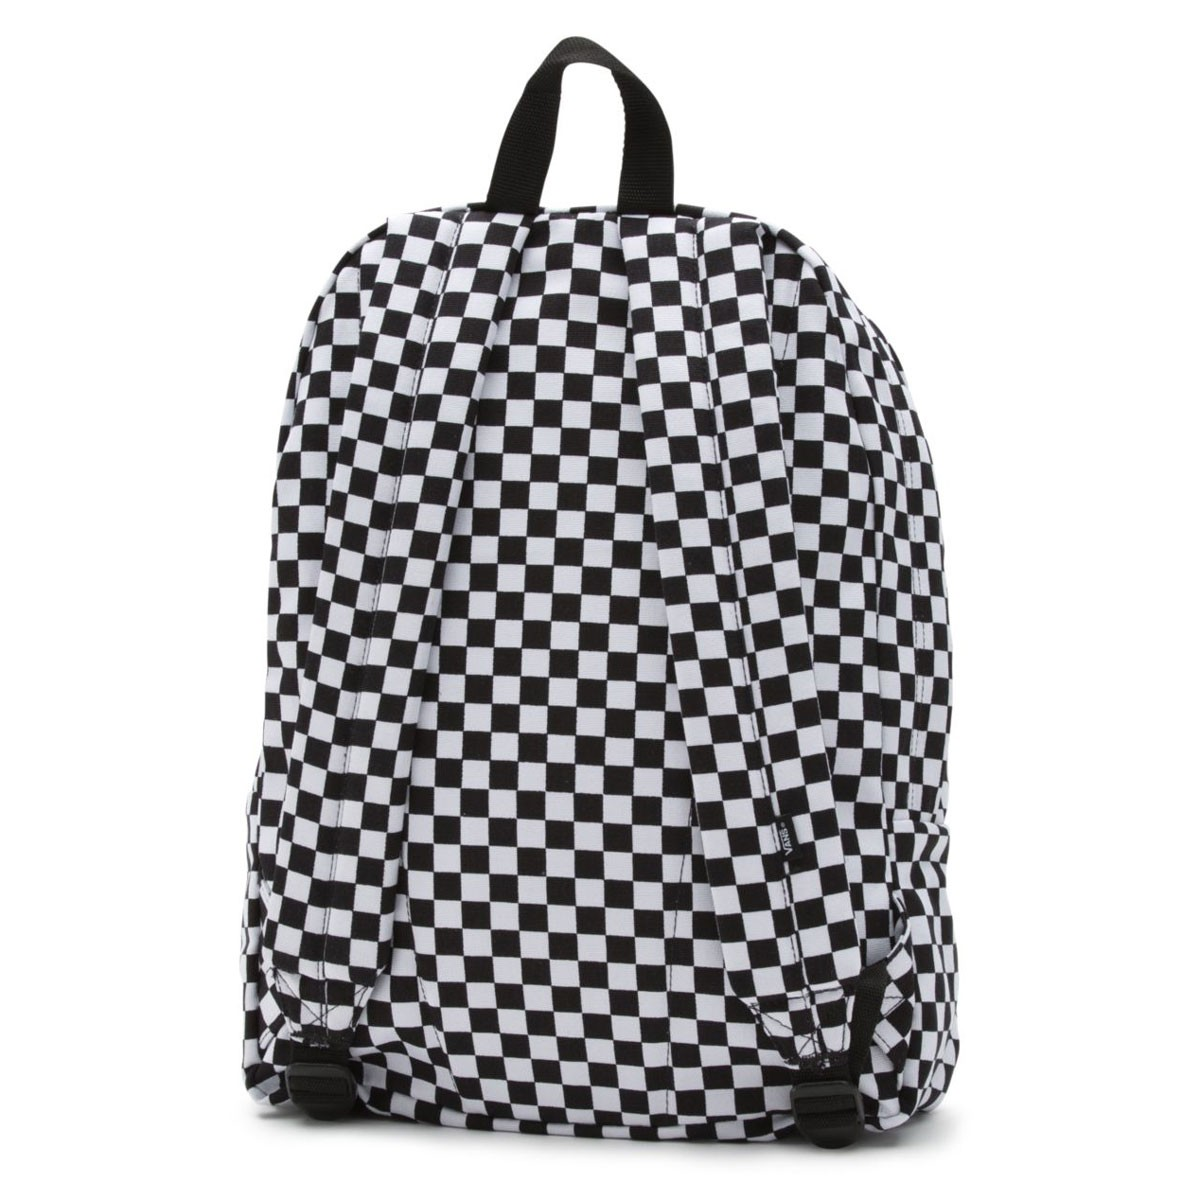 Vans Old Skool III Backpack BlackWhite Check